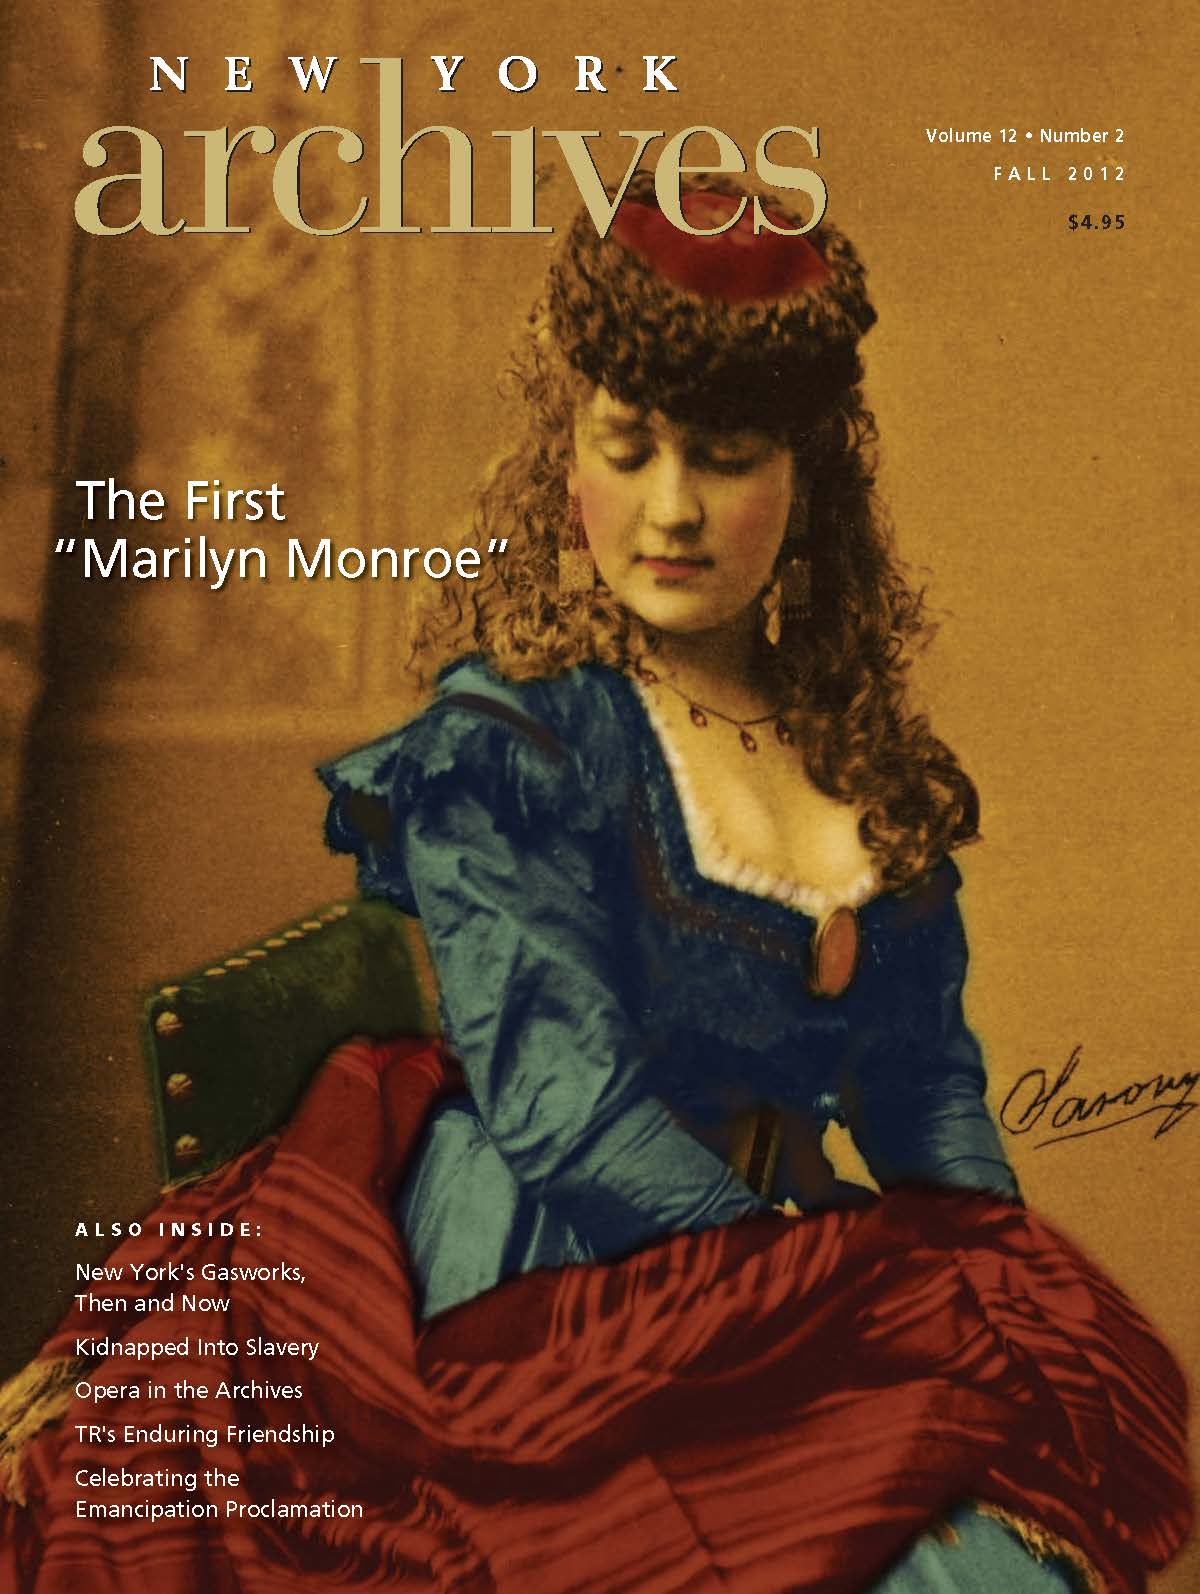 archivesmag_fall2012_cover.jpg